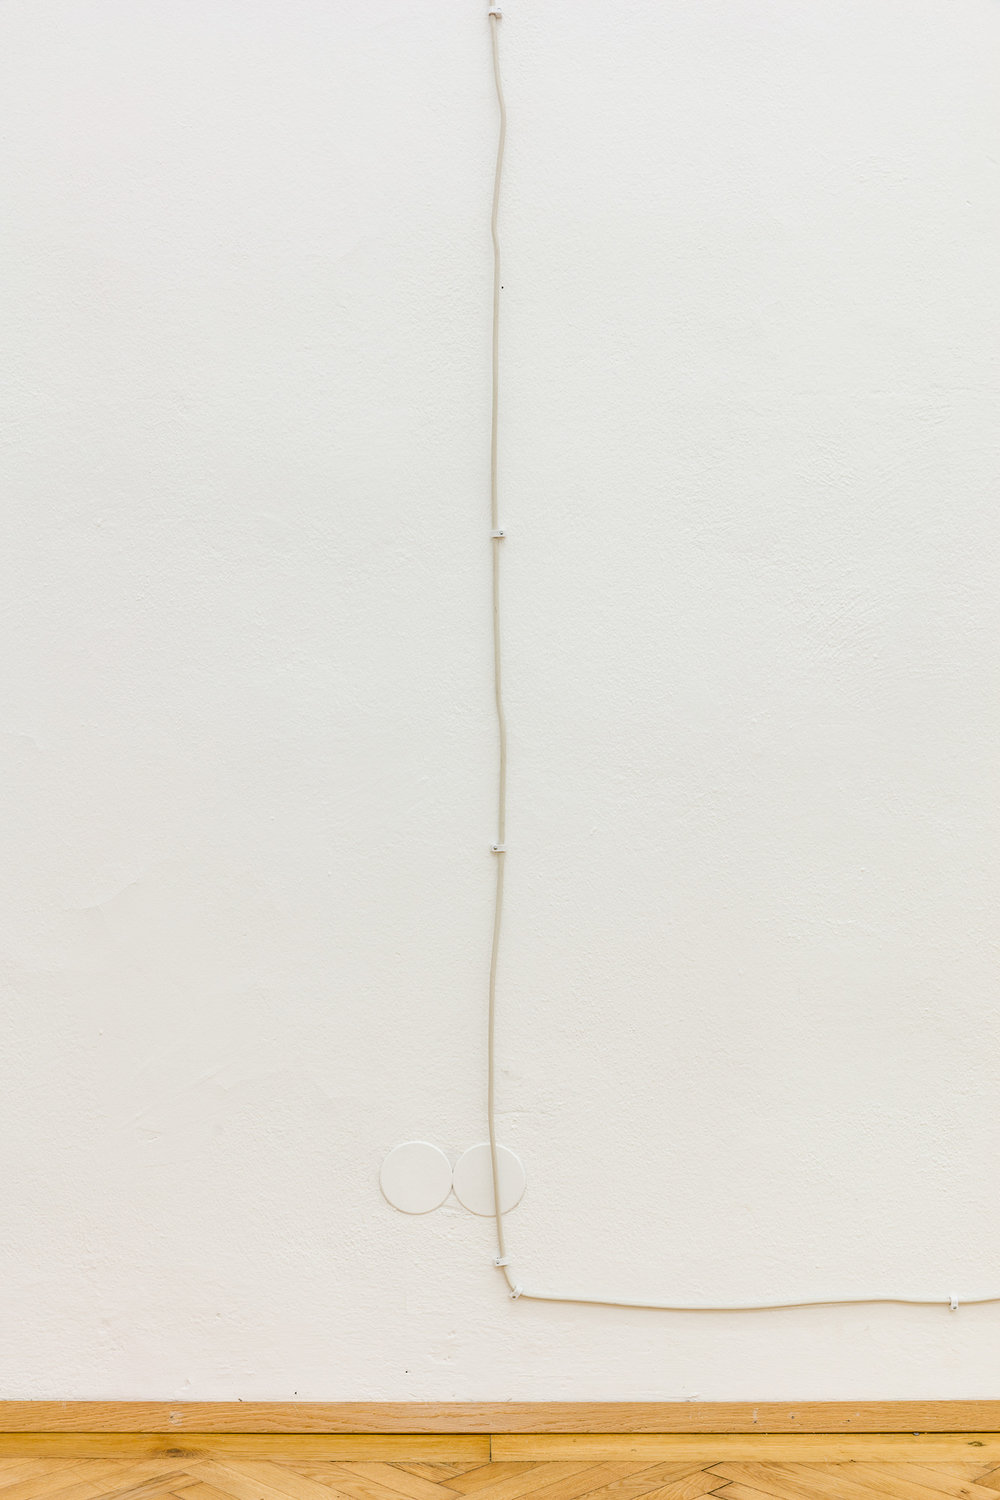 2018_11_08_Vera Lutz at Felix Gaudlitz_by kunst-dokumentation.com_028_web.jpg